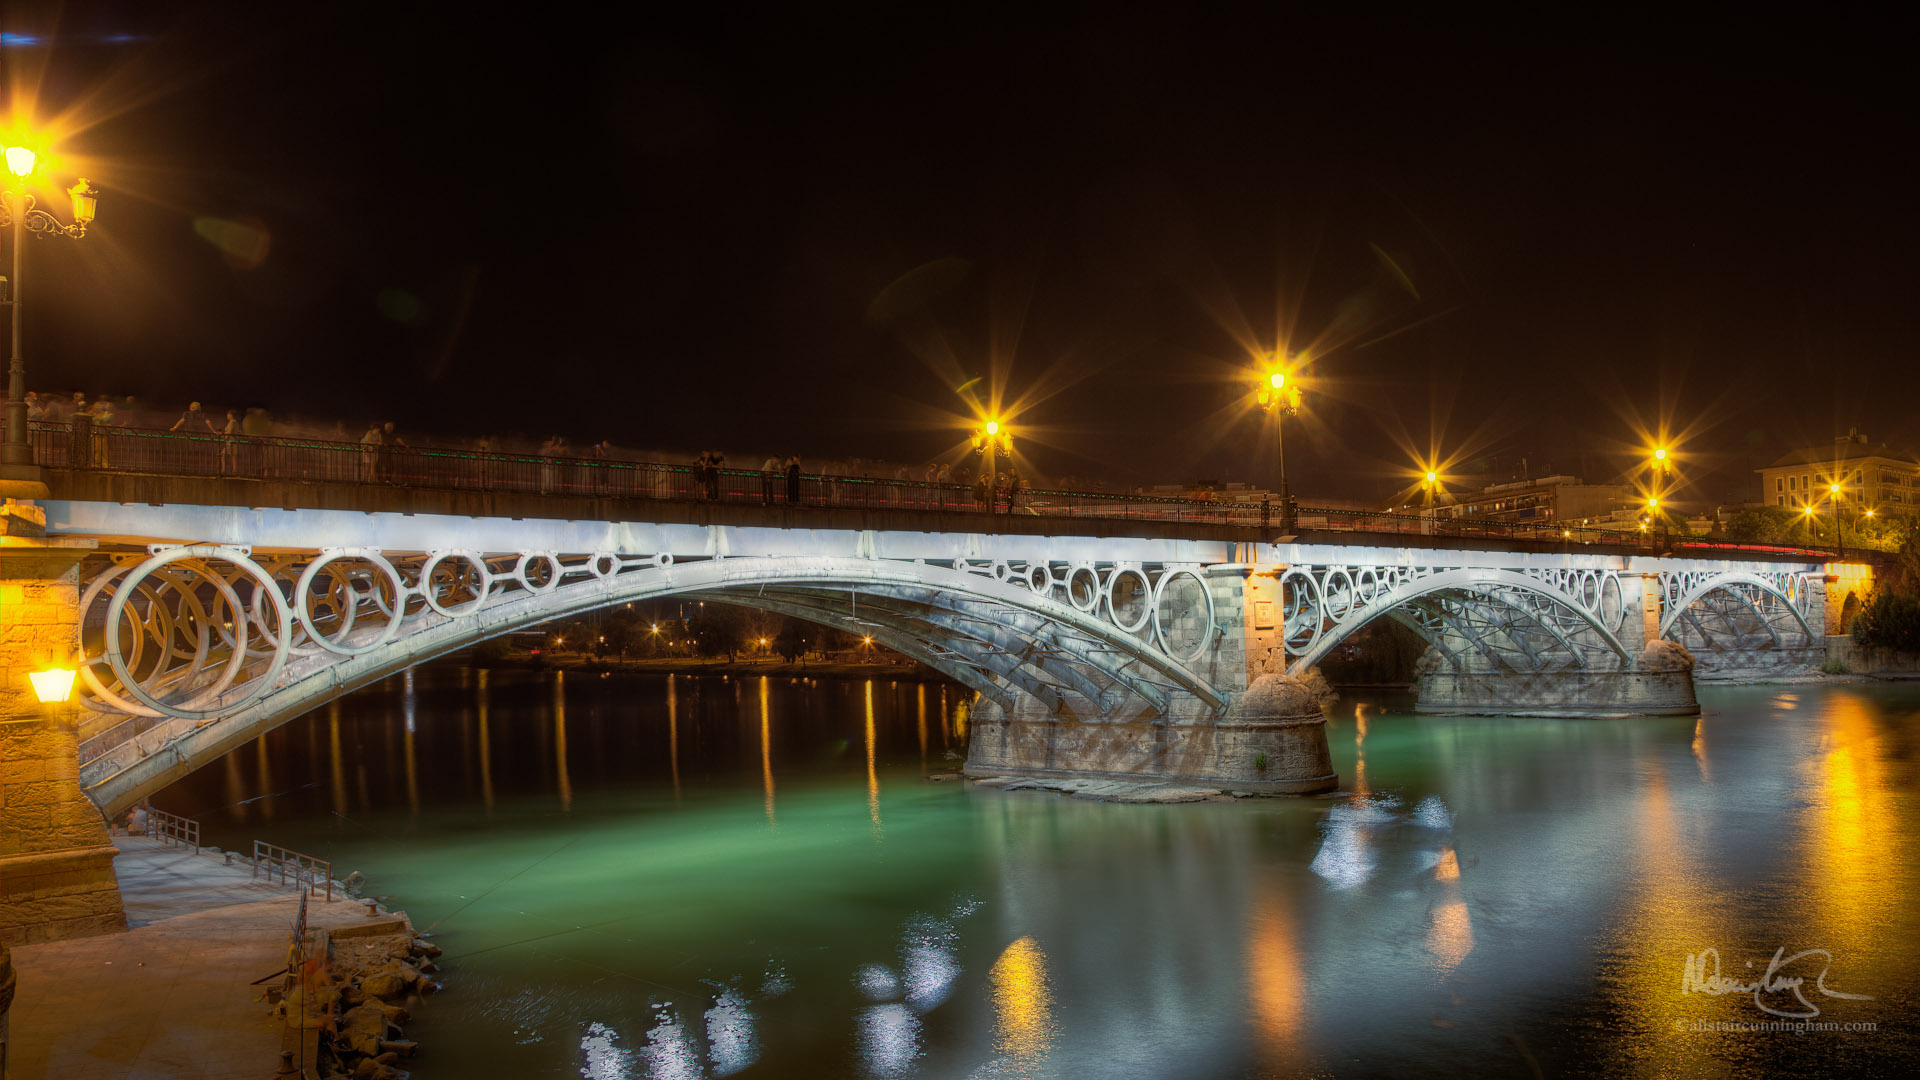 Isabel II's / The Triana's Bridge, Seville